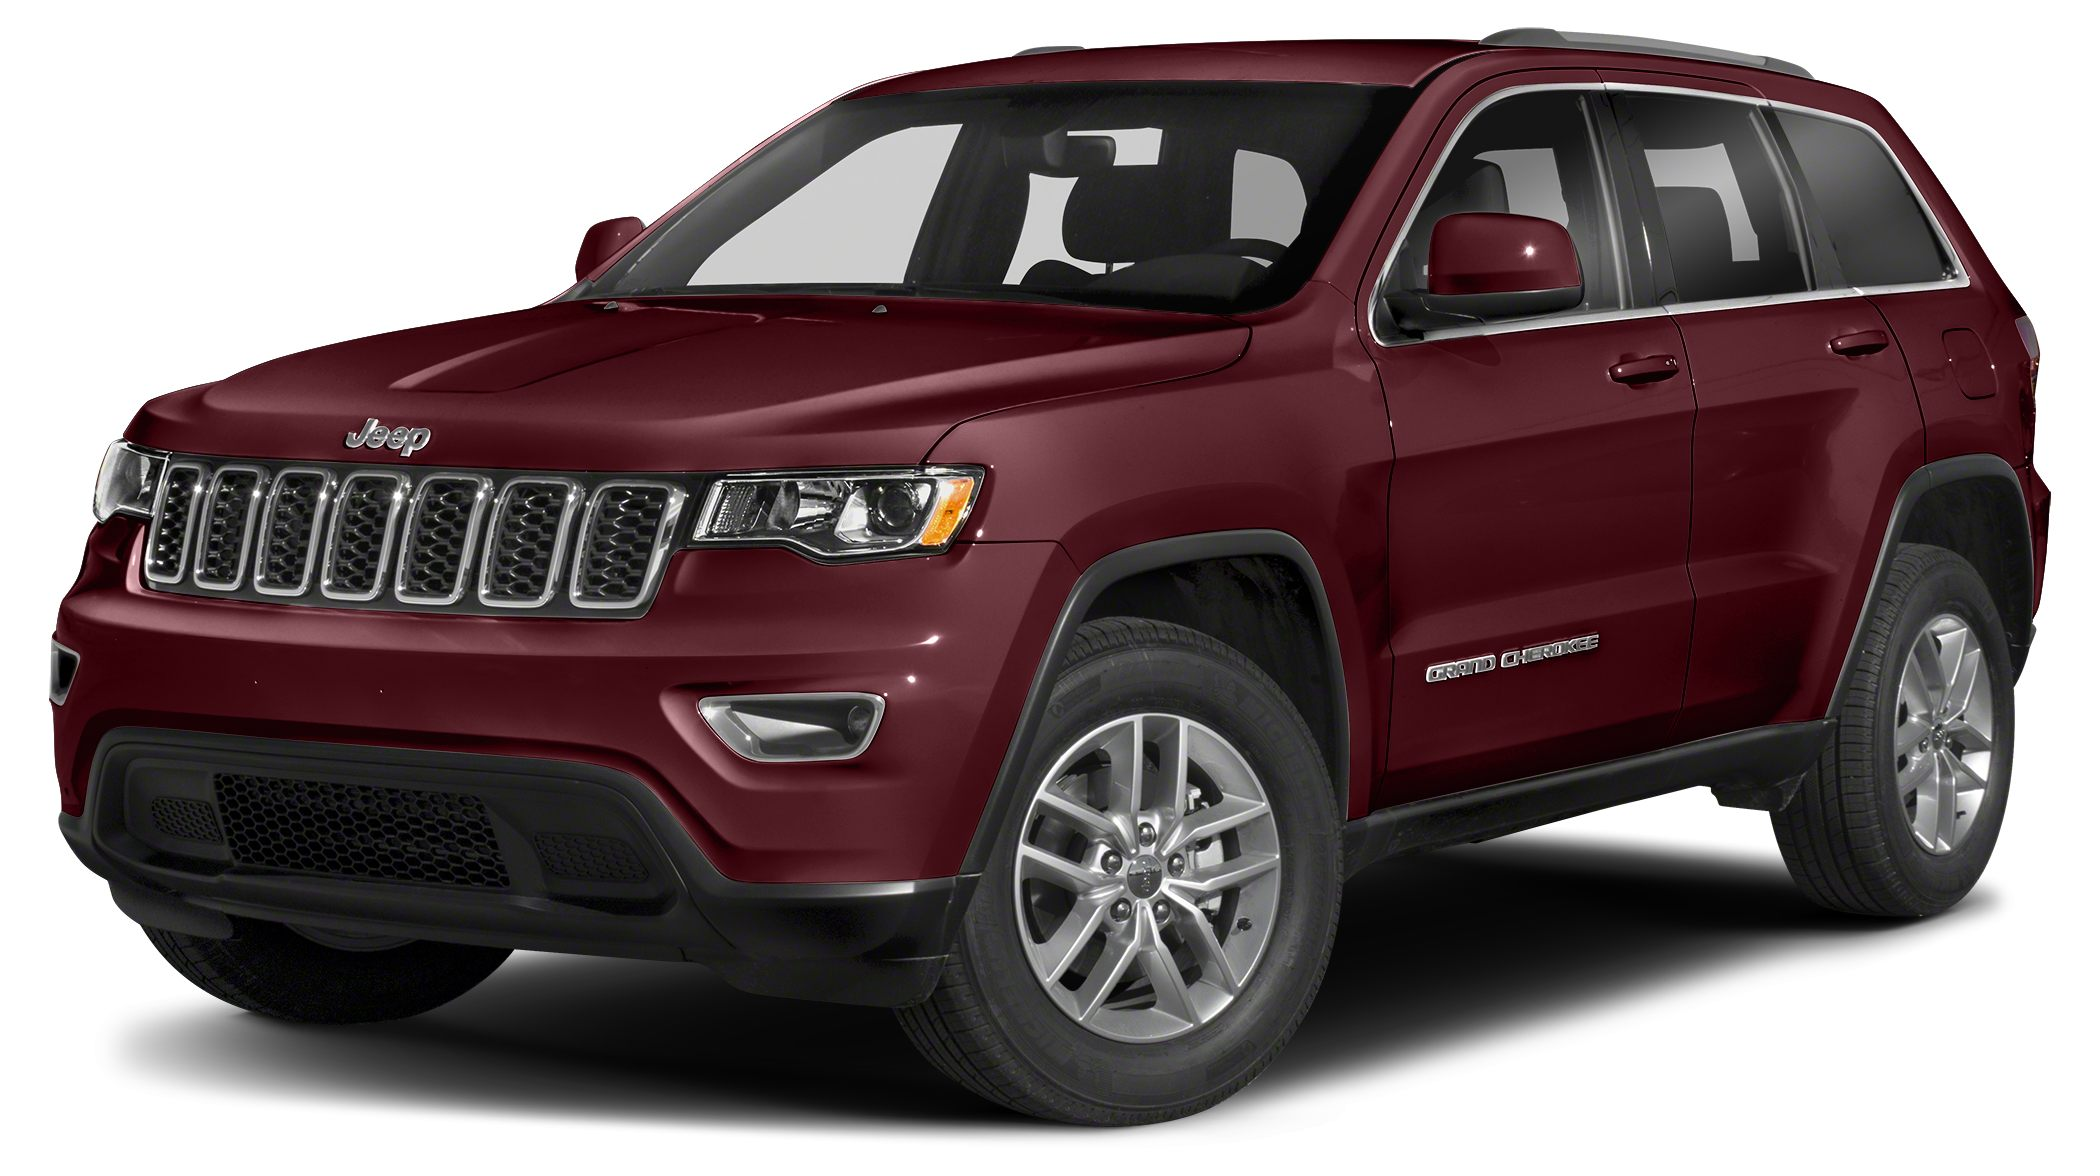 2018 Jeep Grand Cherokee Laredo New Price 2018 Jeep Grand Cherokee Laredo Altitude Package - RWD